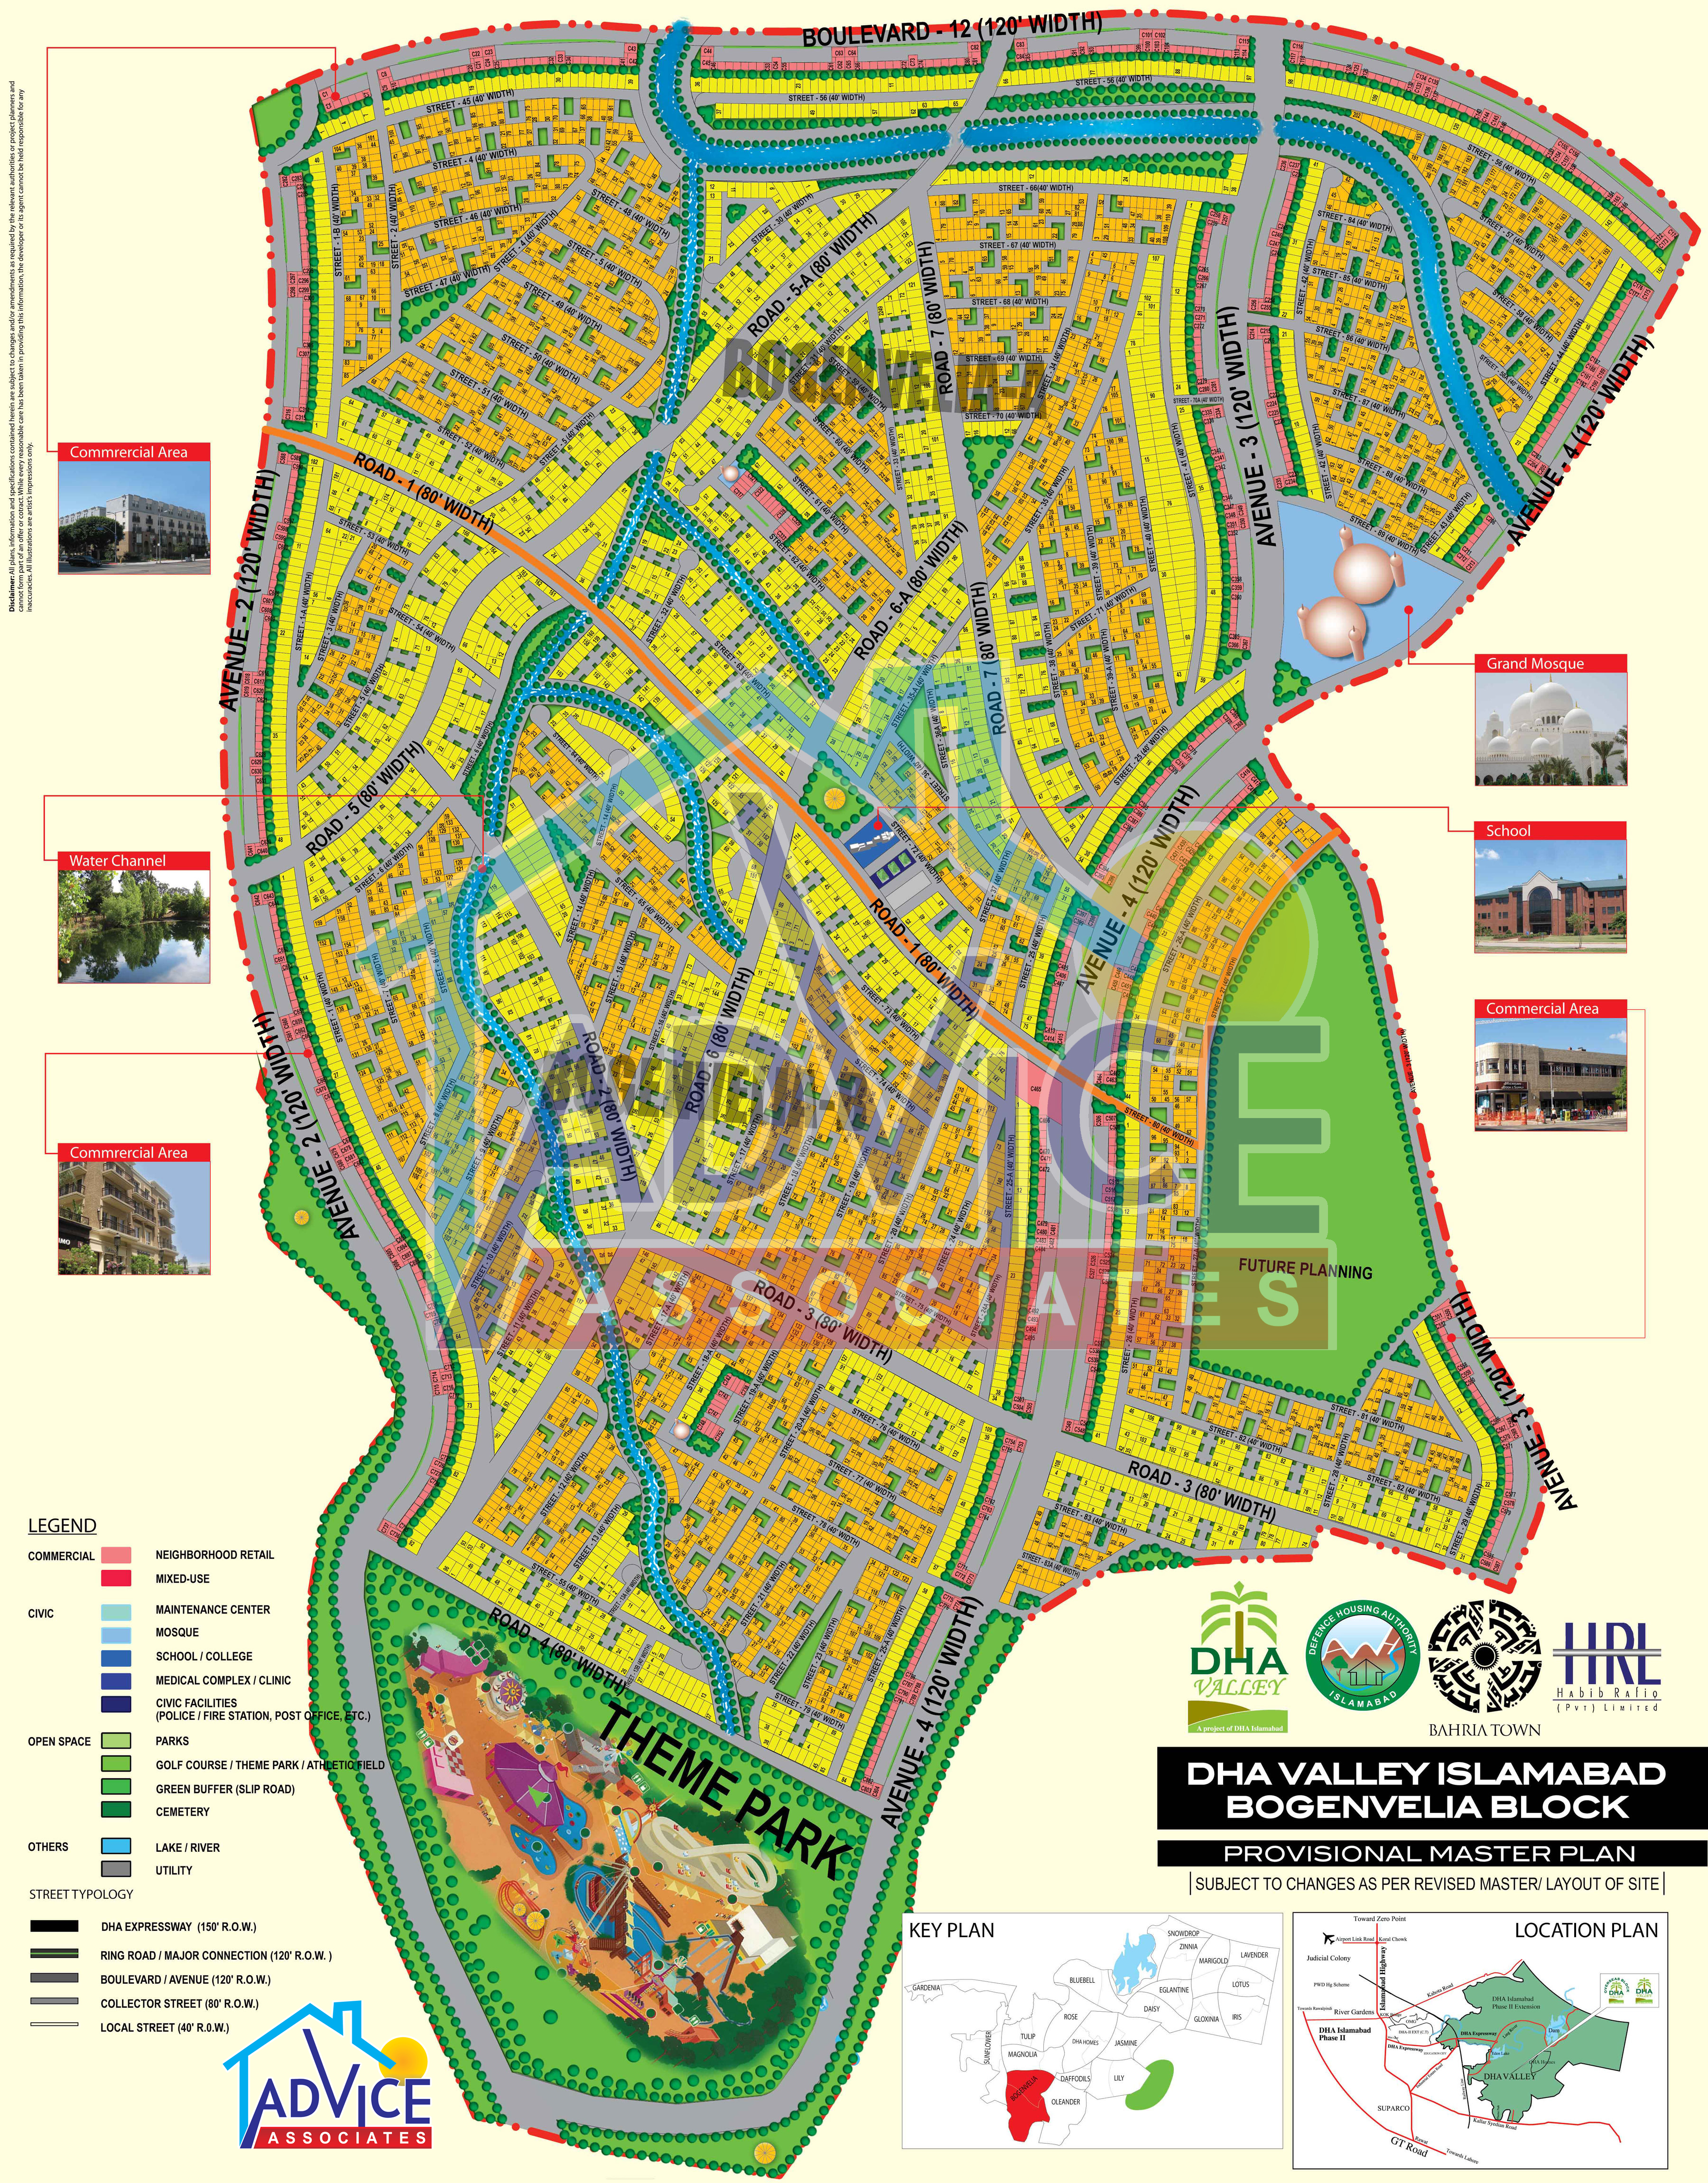 DHA Valley Islamabad Maps